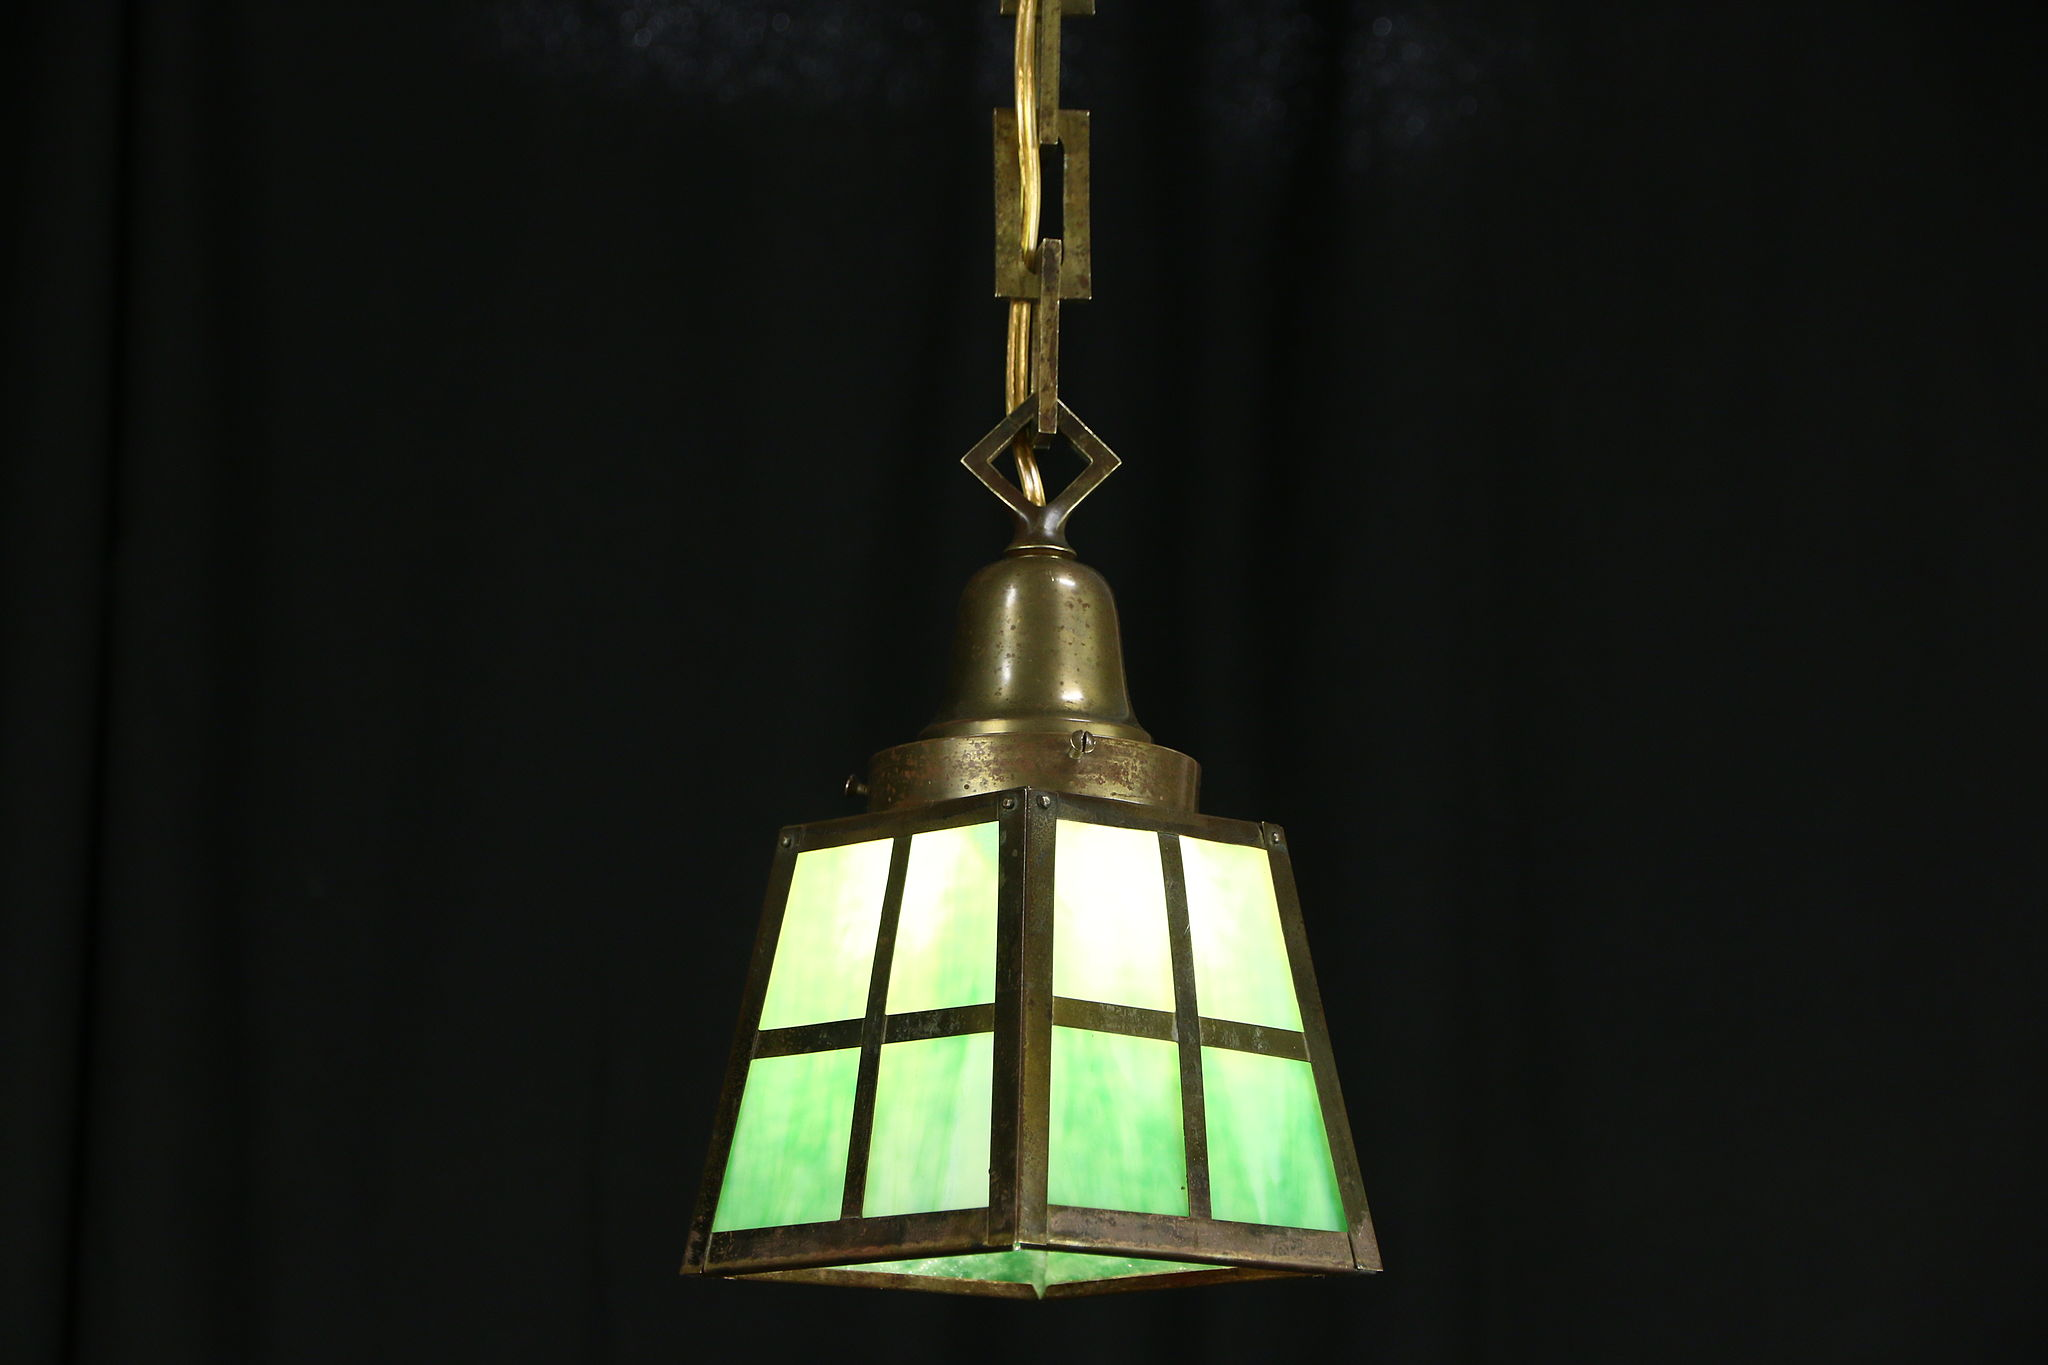 Arts and crafts light fixtures - Arts Crafts Mission 1905 Antique Stained Glass Craftsman Hall Light Fixture